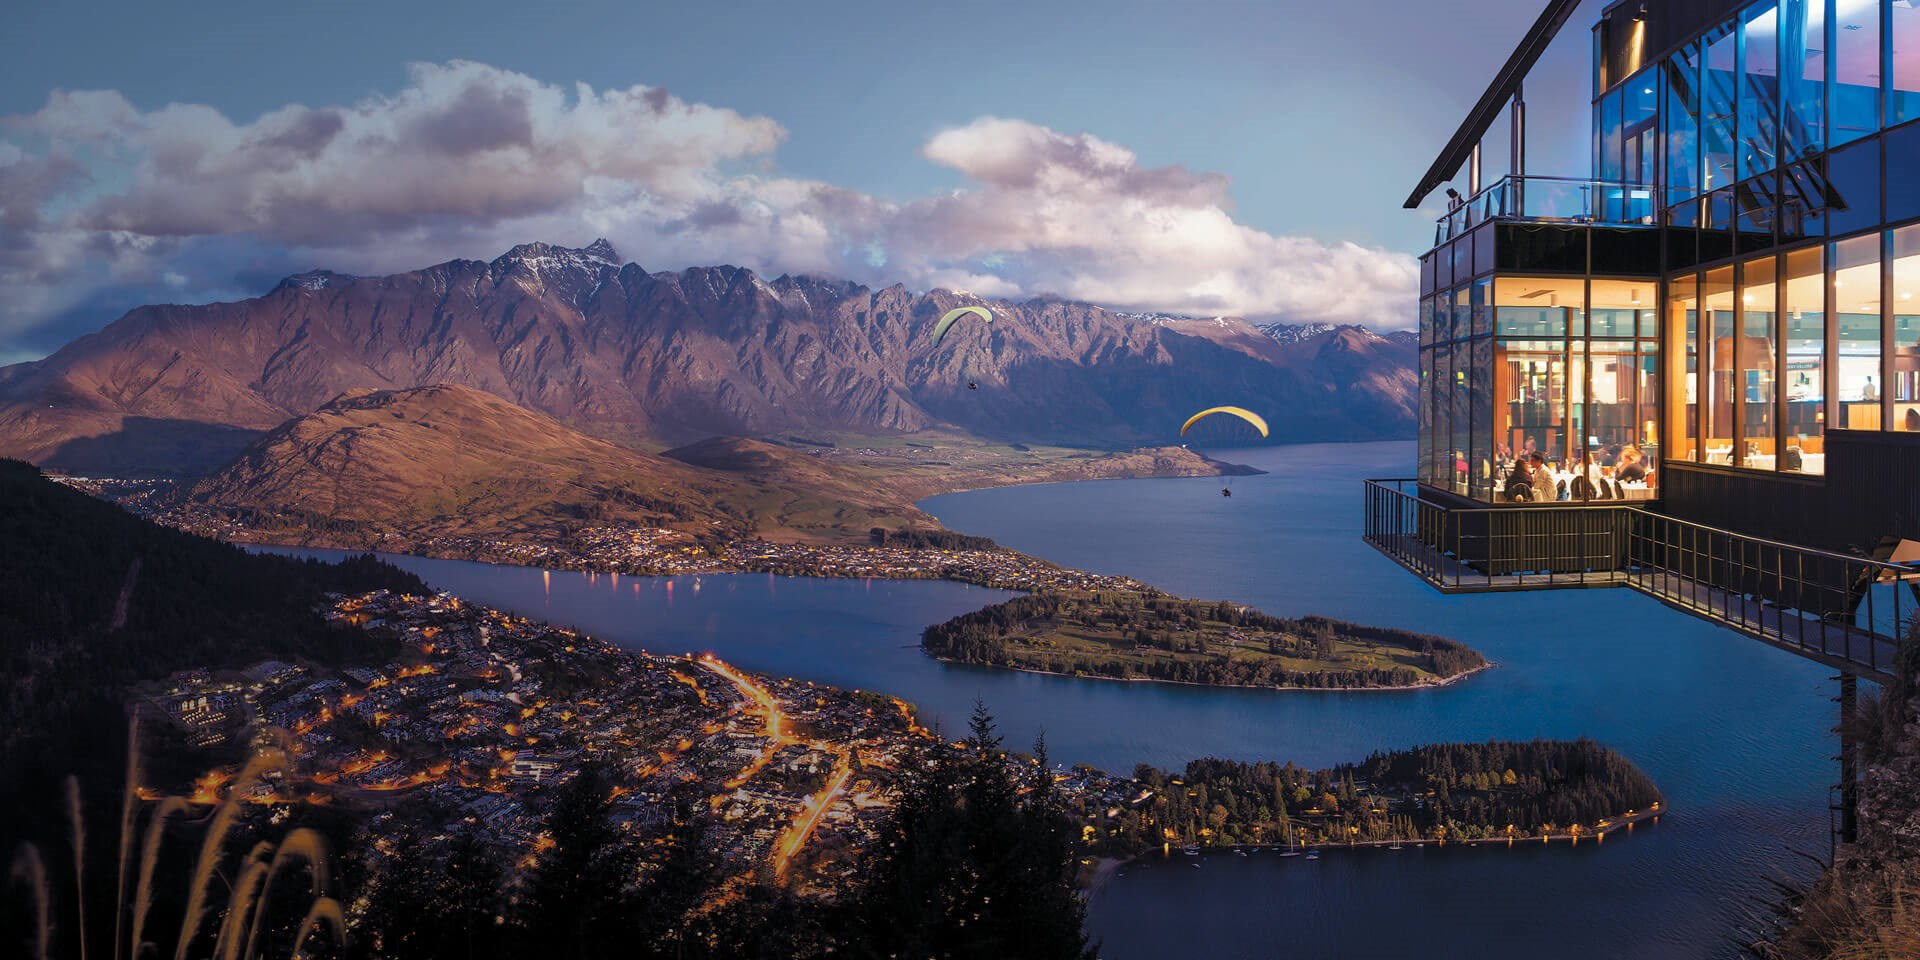 Dining high above Queenstown at the Stratosfare restaurant on Bob's Peak.